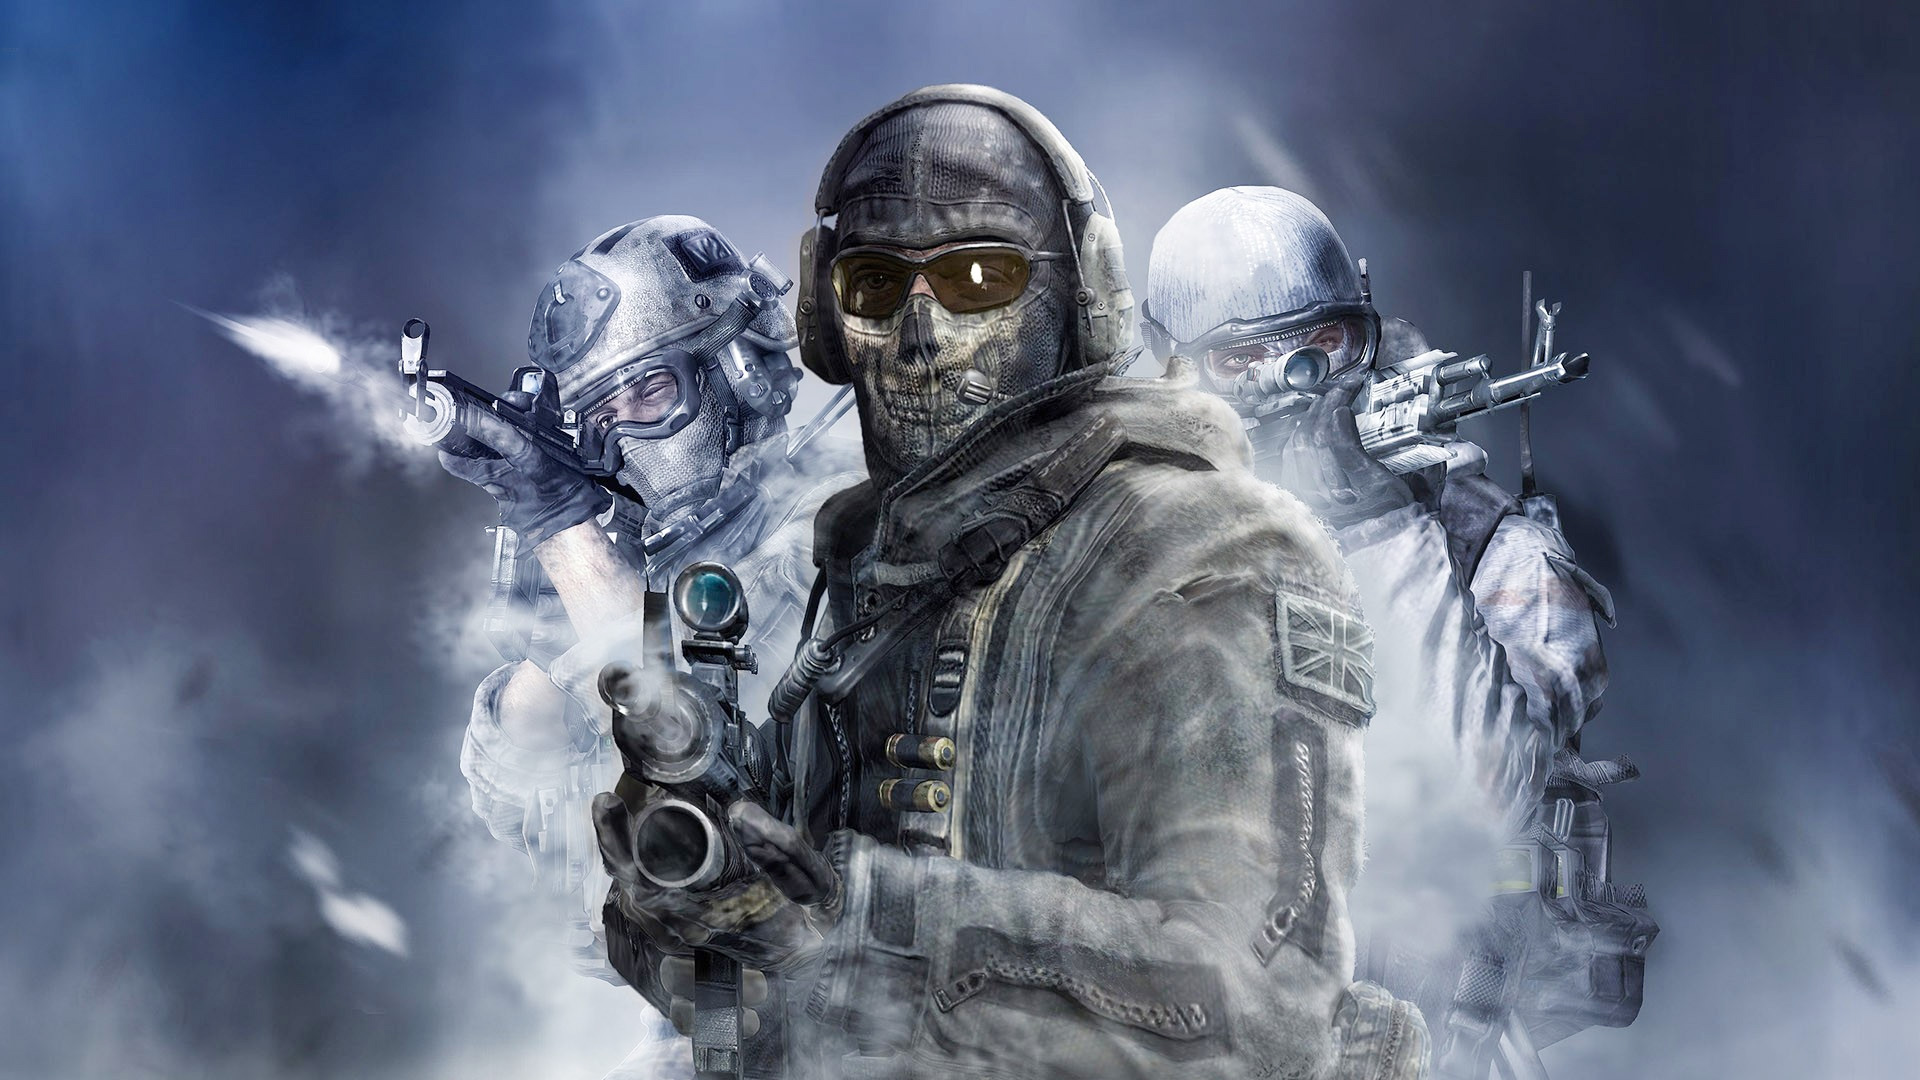 Awesome Call Of Duty Ghosts Wallpaper